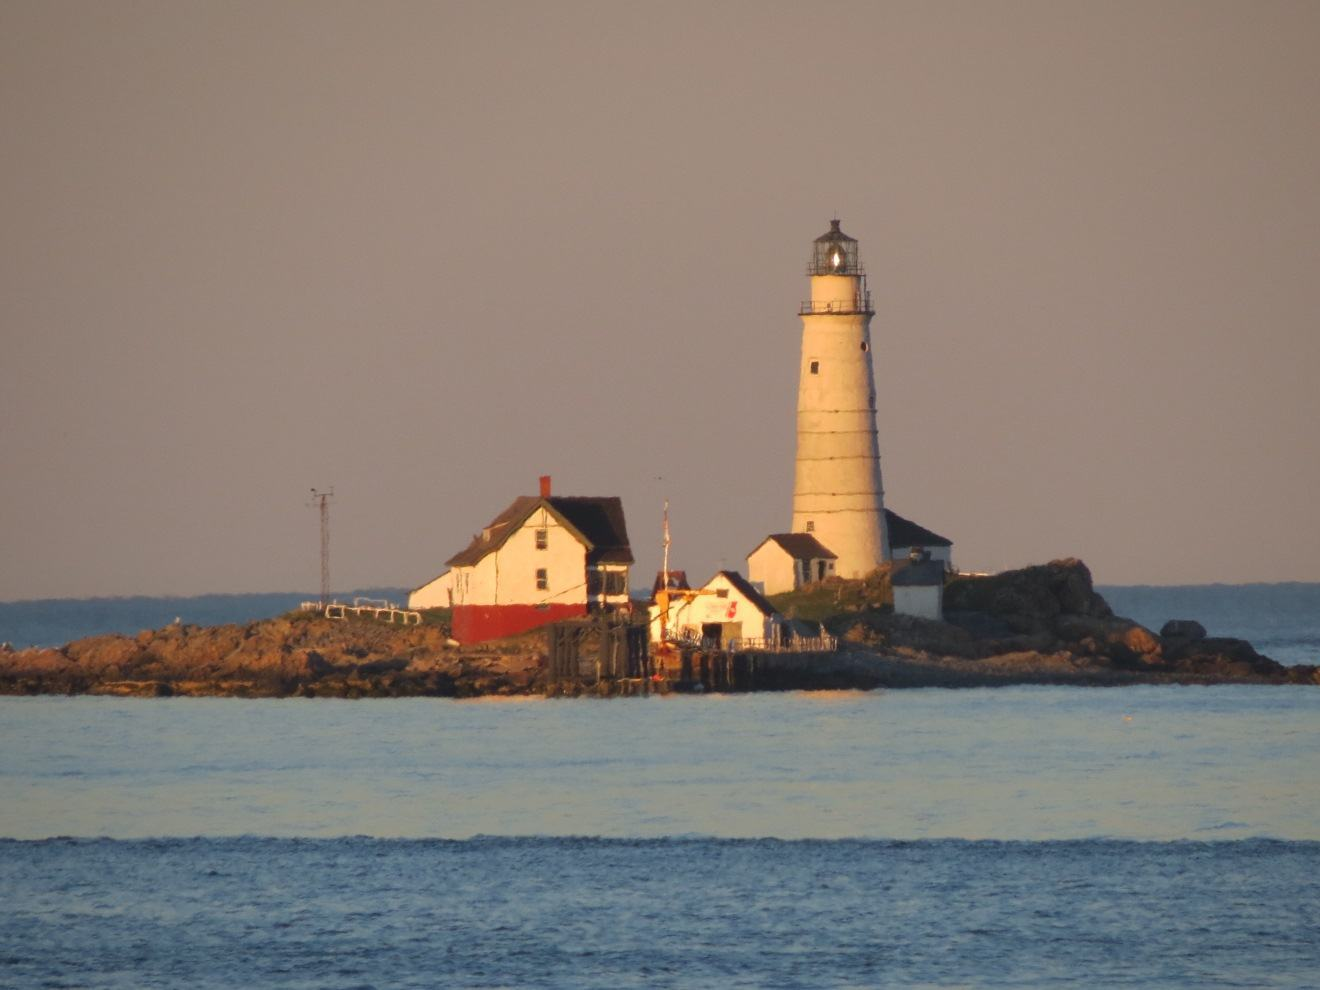 Boston Light as it looks today